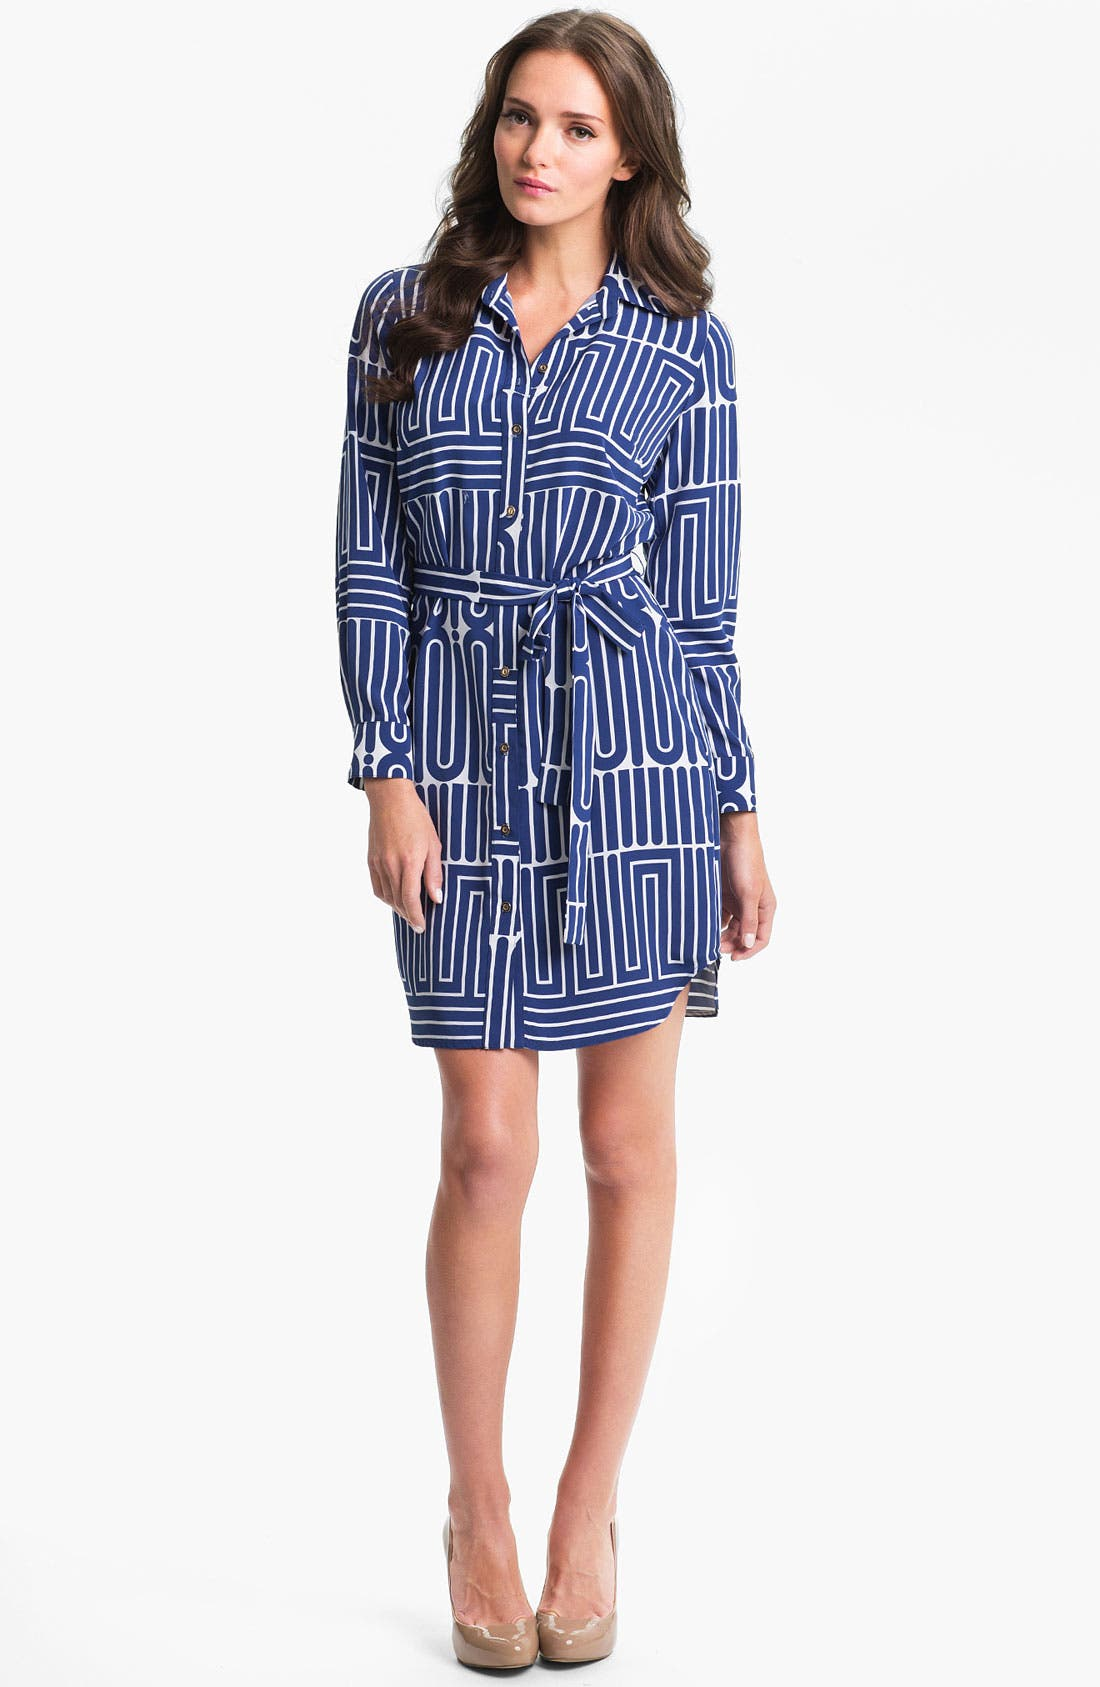 Alternate Image 1 Selected - Trina Turk 'Aces' Shirtdress